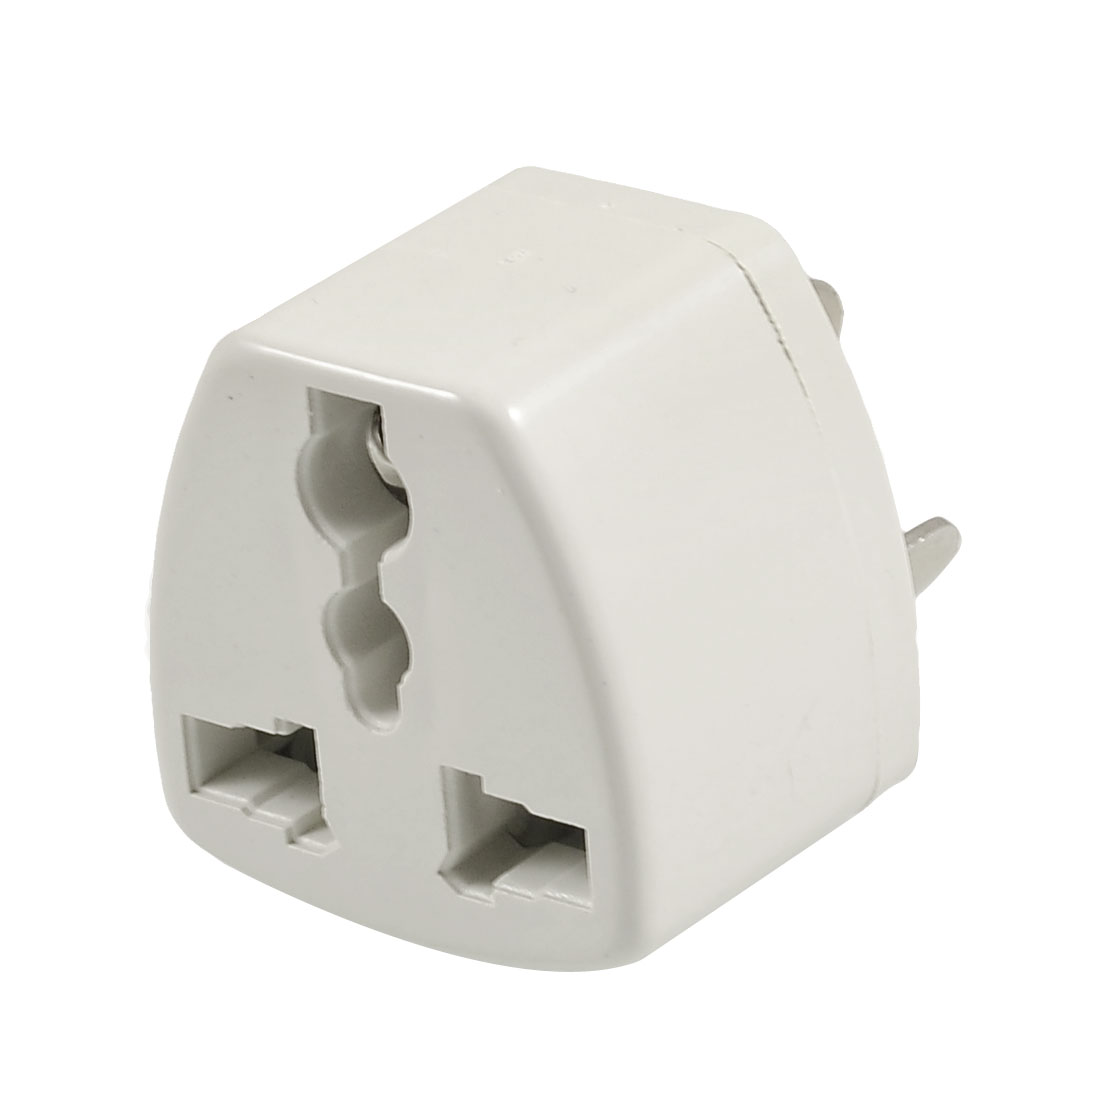 AU Plug to EU US UK Socket AC 250V 10A Power Travel Adapter